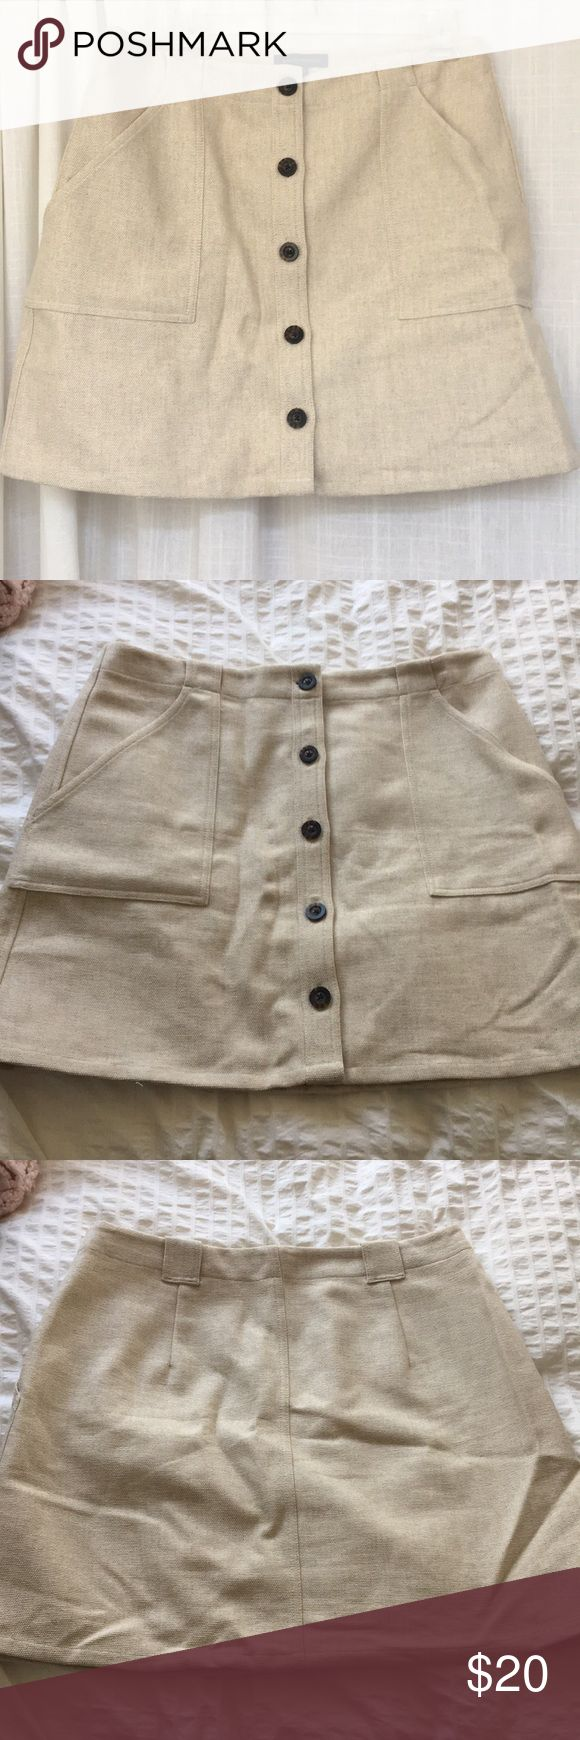 Banana Republic Canvas Button-Front Skirt This skirt buttons all the way up the front and has functional pockets and belt loops. The canvas material is a little heavier so it's great for fall and winter worn with tights. Worn only once! Banana Republic Skirts Mini